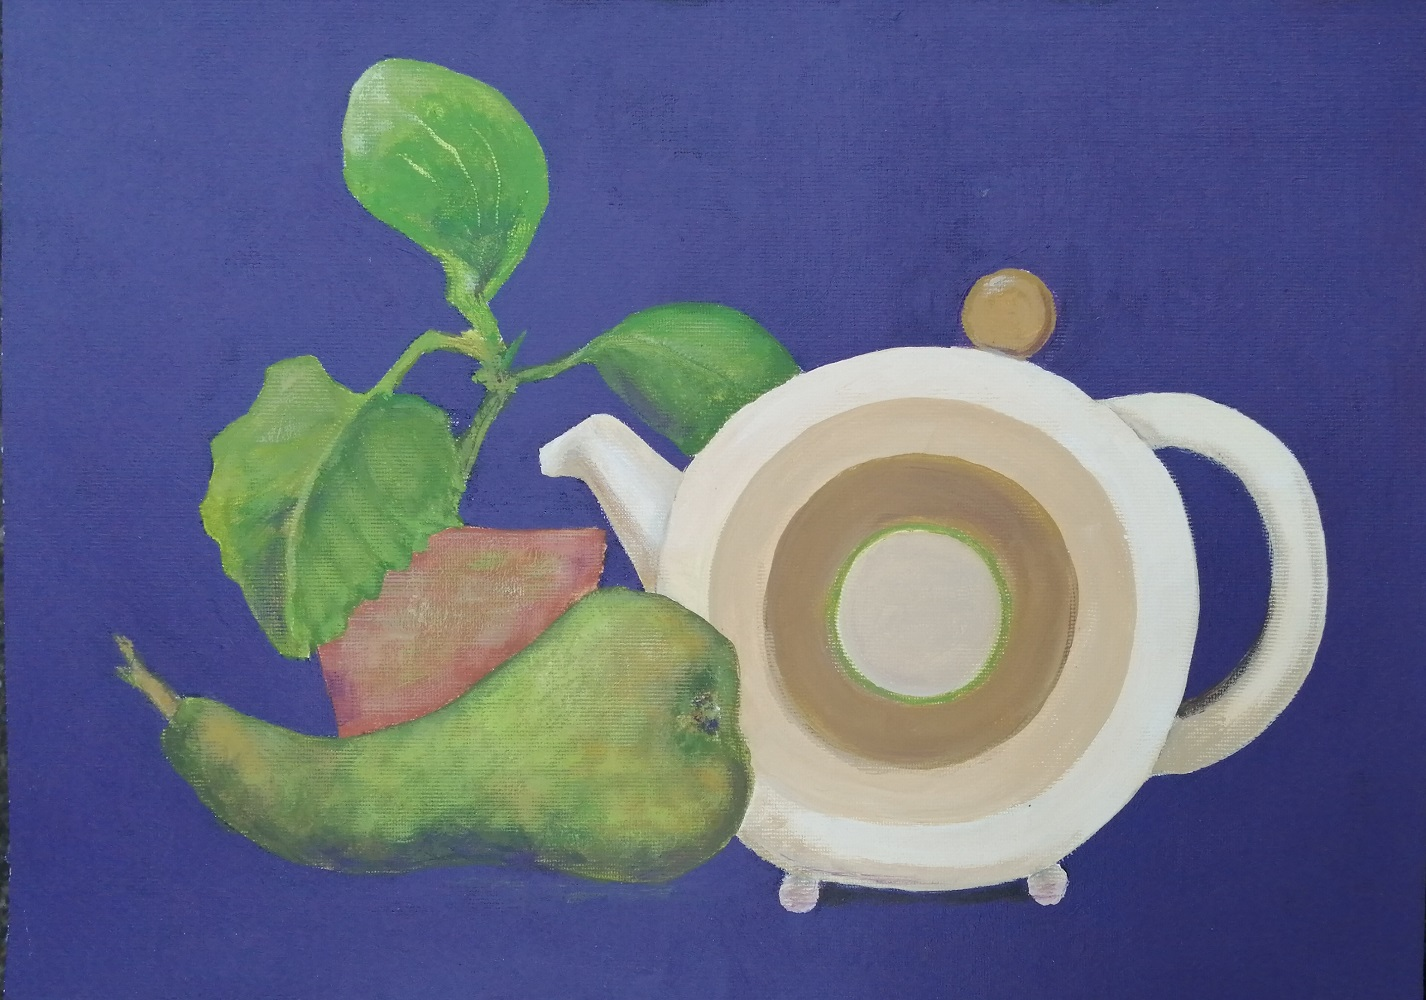 Conference Pear and Vintage Clarice Cliff Teapot